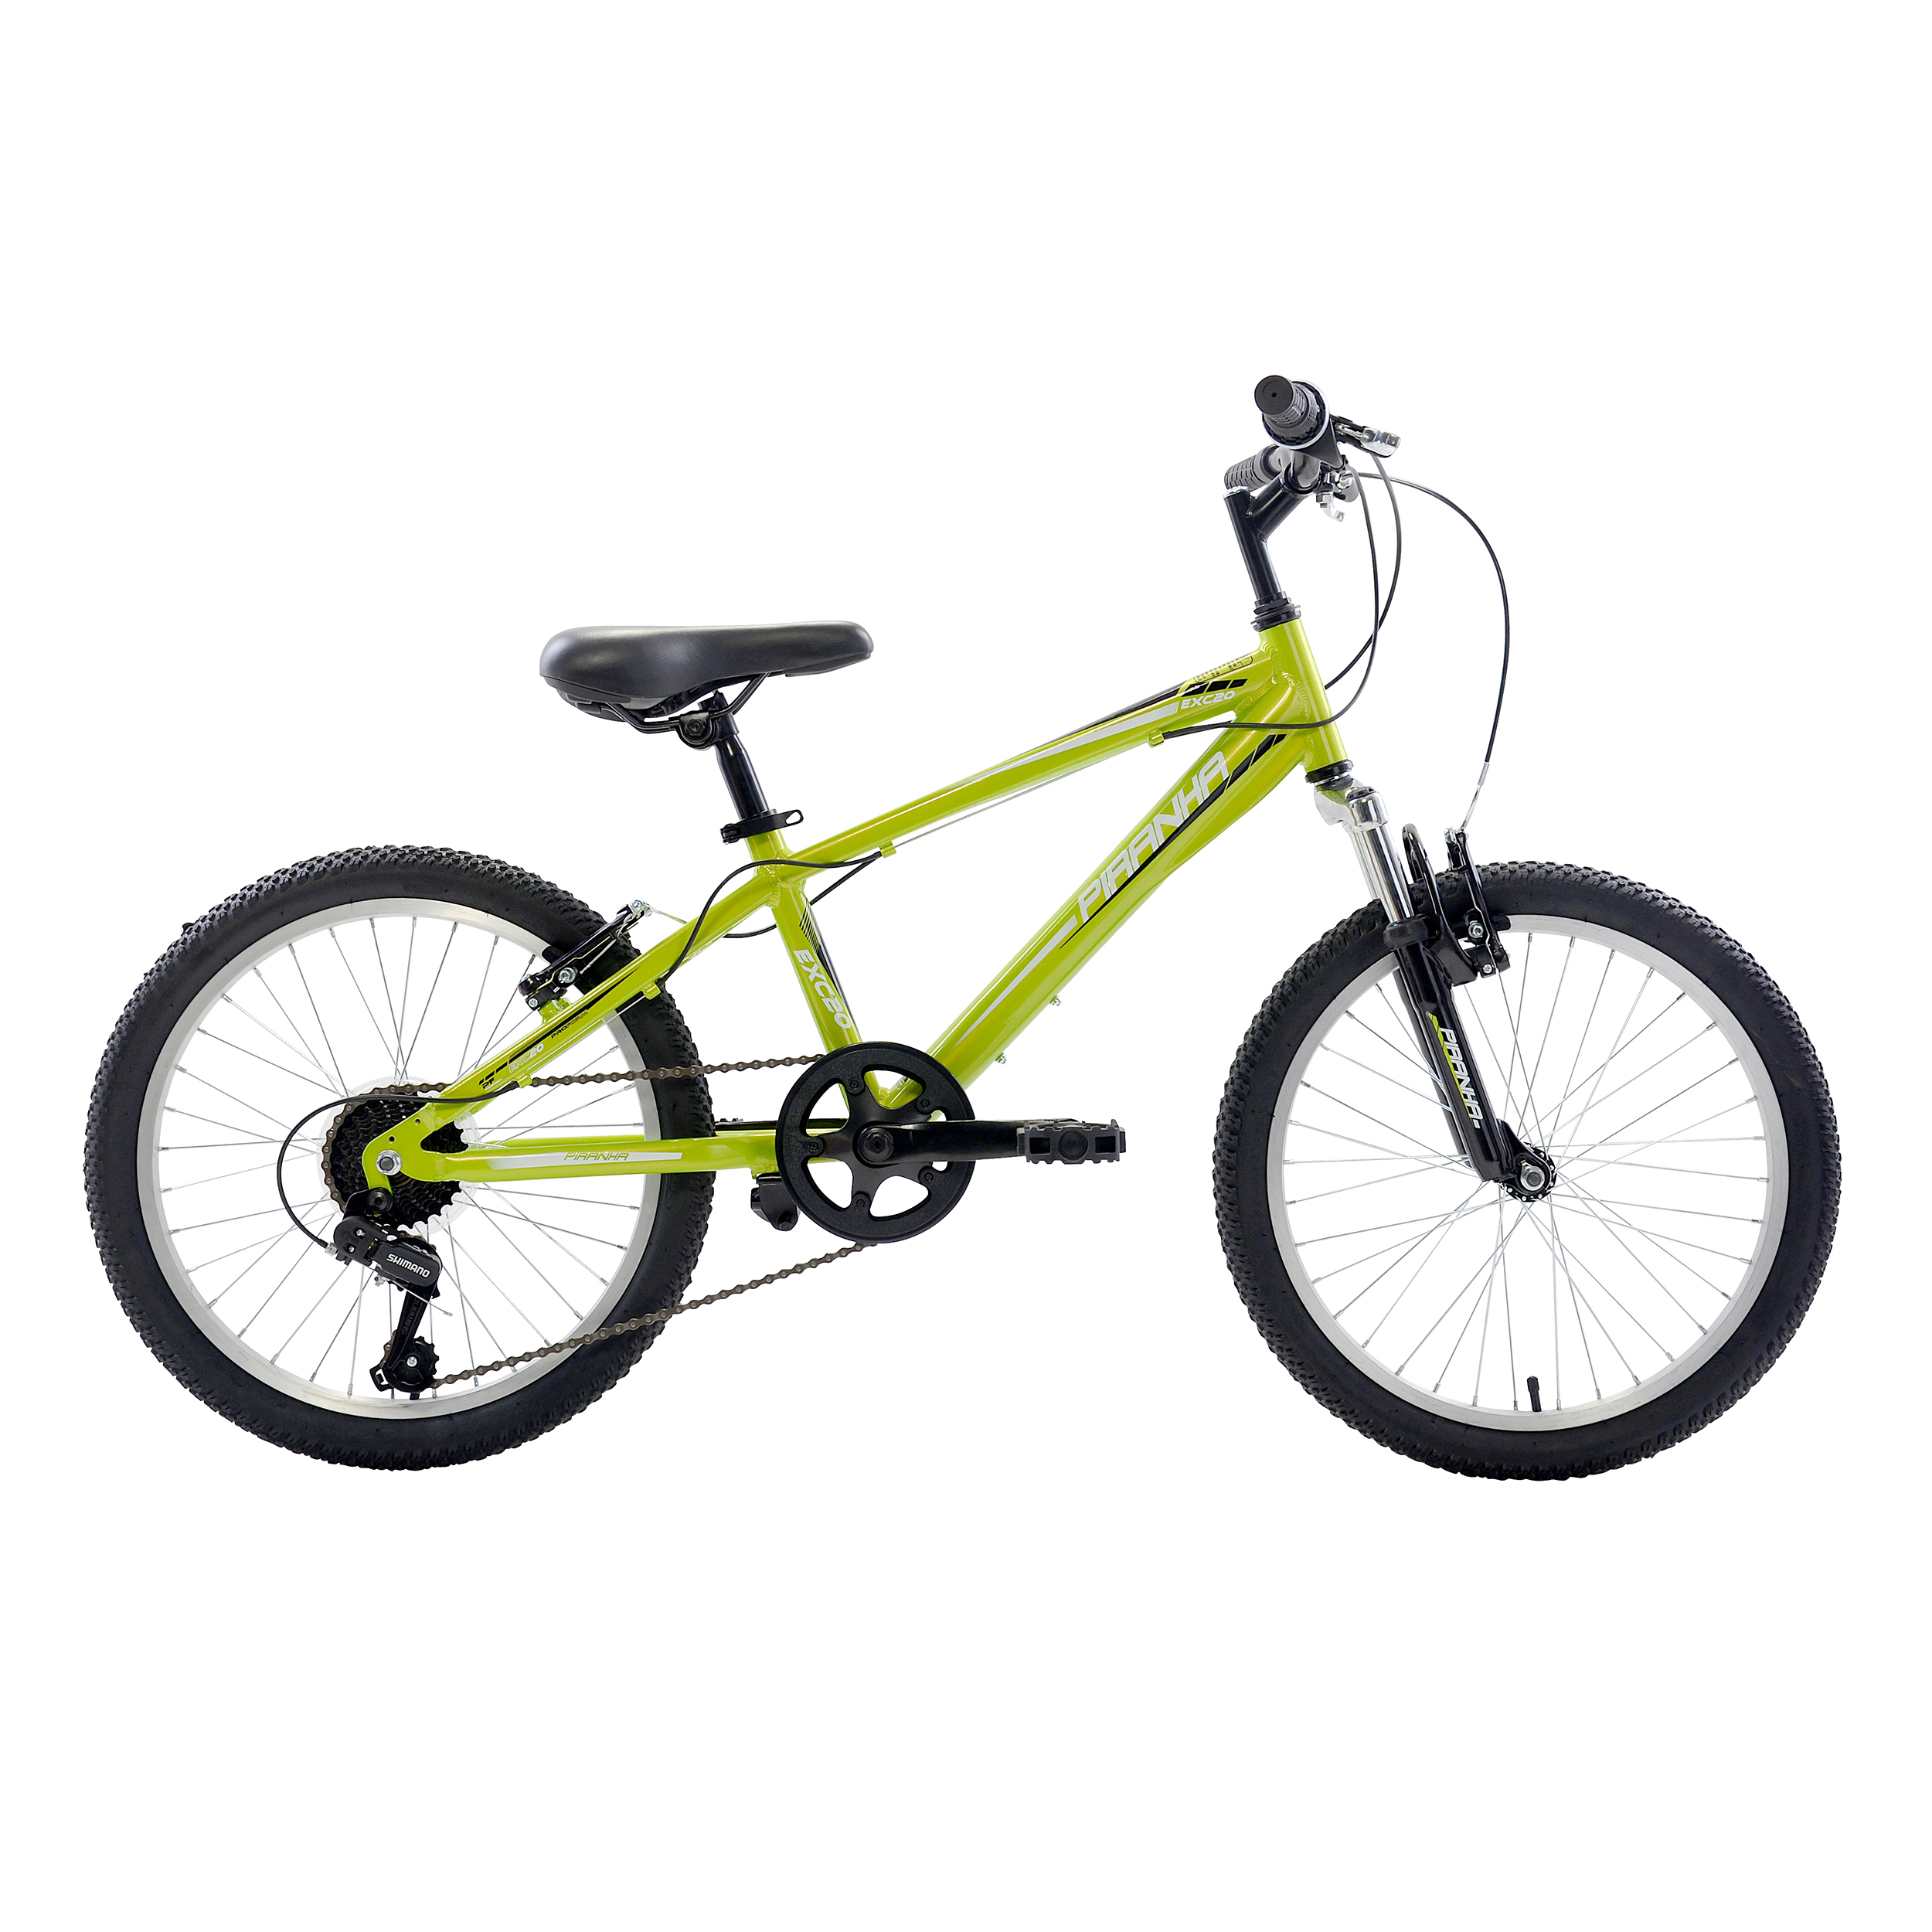 Piranha 7 Speed Kids' MTB, 20 inch wheels, Boy's Bike, Green